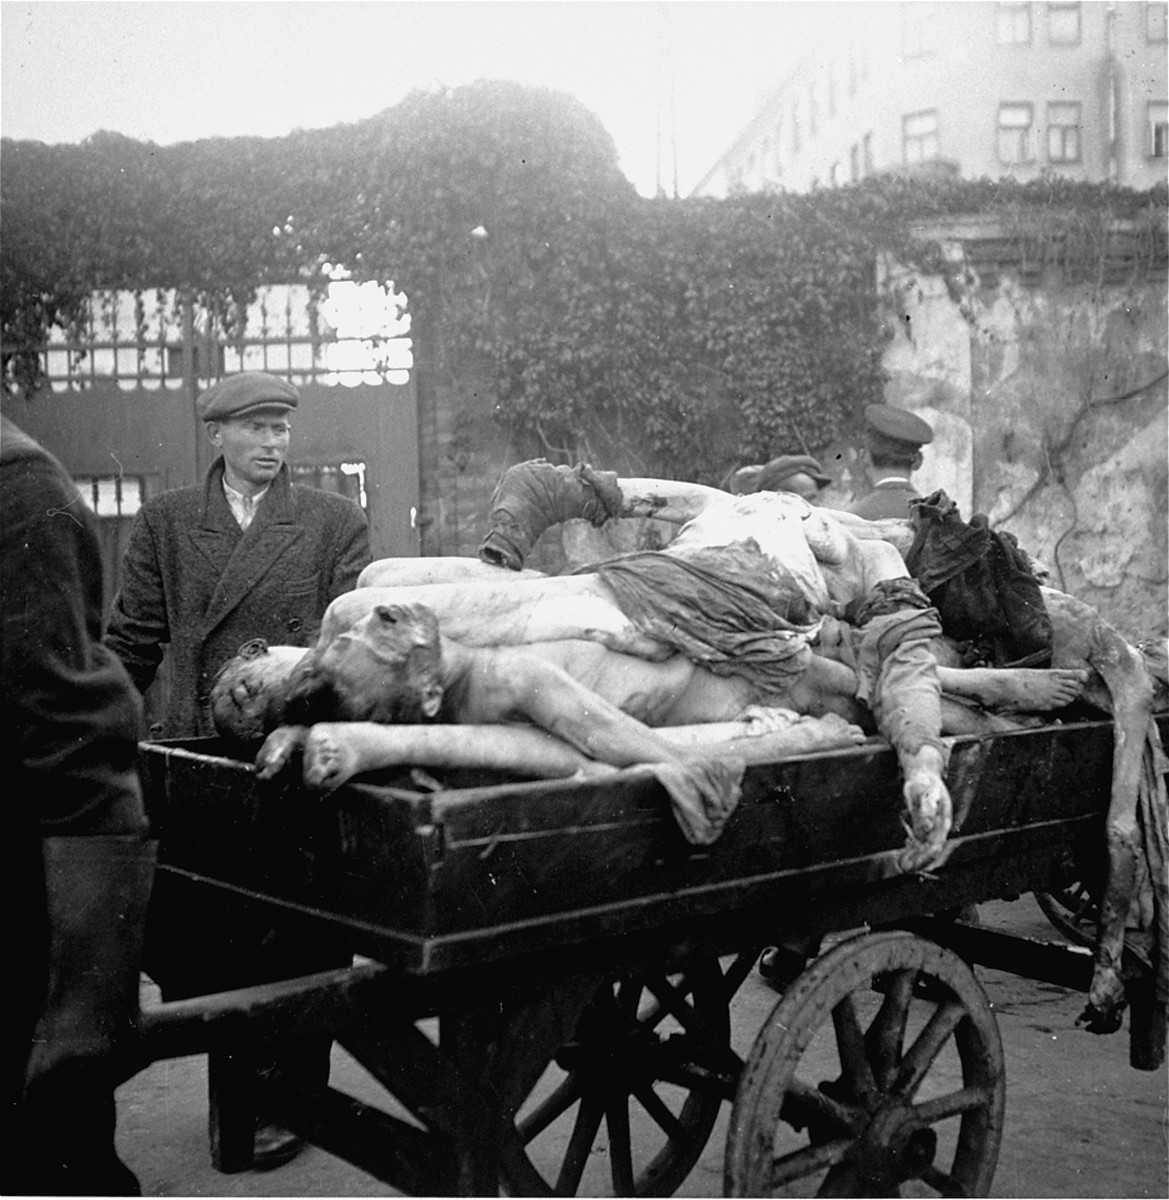 """An undertaker pulls a cart laden with corpses into the Jewish cemetery on Okopowa Street for burial in a mass grave.    Joest's caption reads: """"The arms of the dead hanging over the side of the body cart moved by themselves.  It was an eerie sight.  In the background is the entrance to the Jewish cemetery."""""""